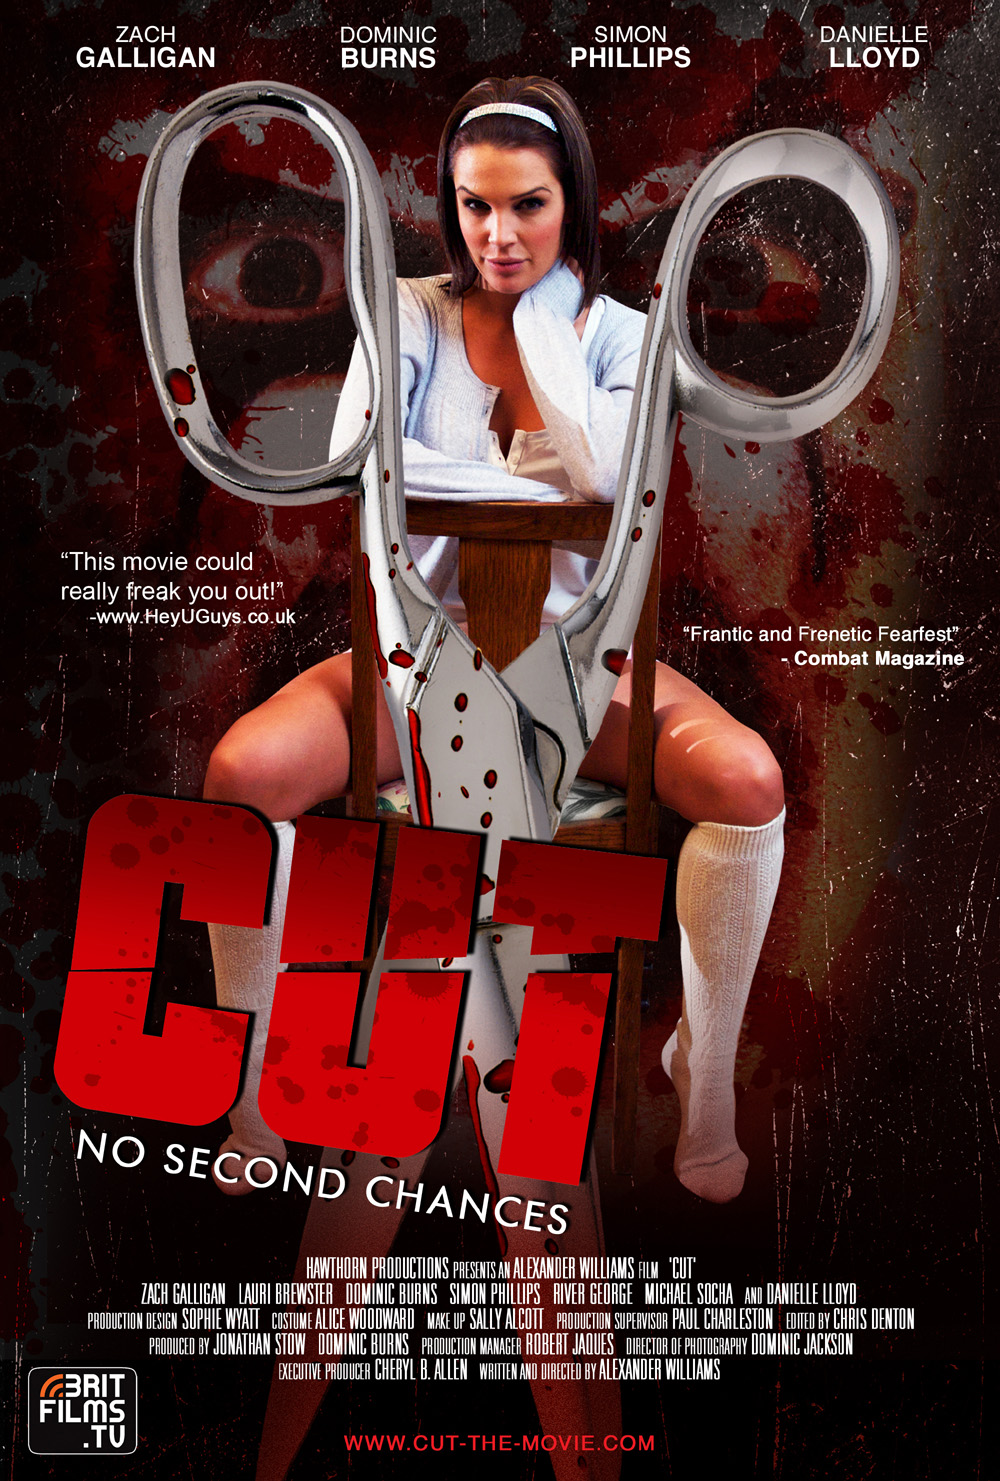 The Cut movie